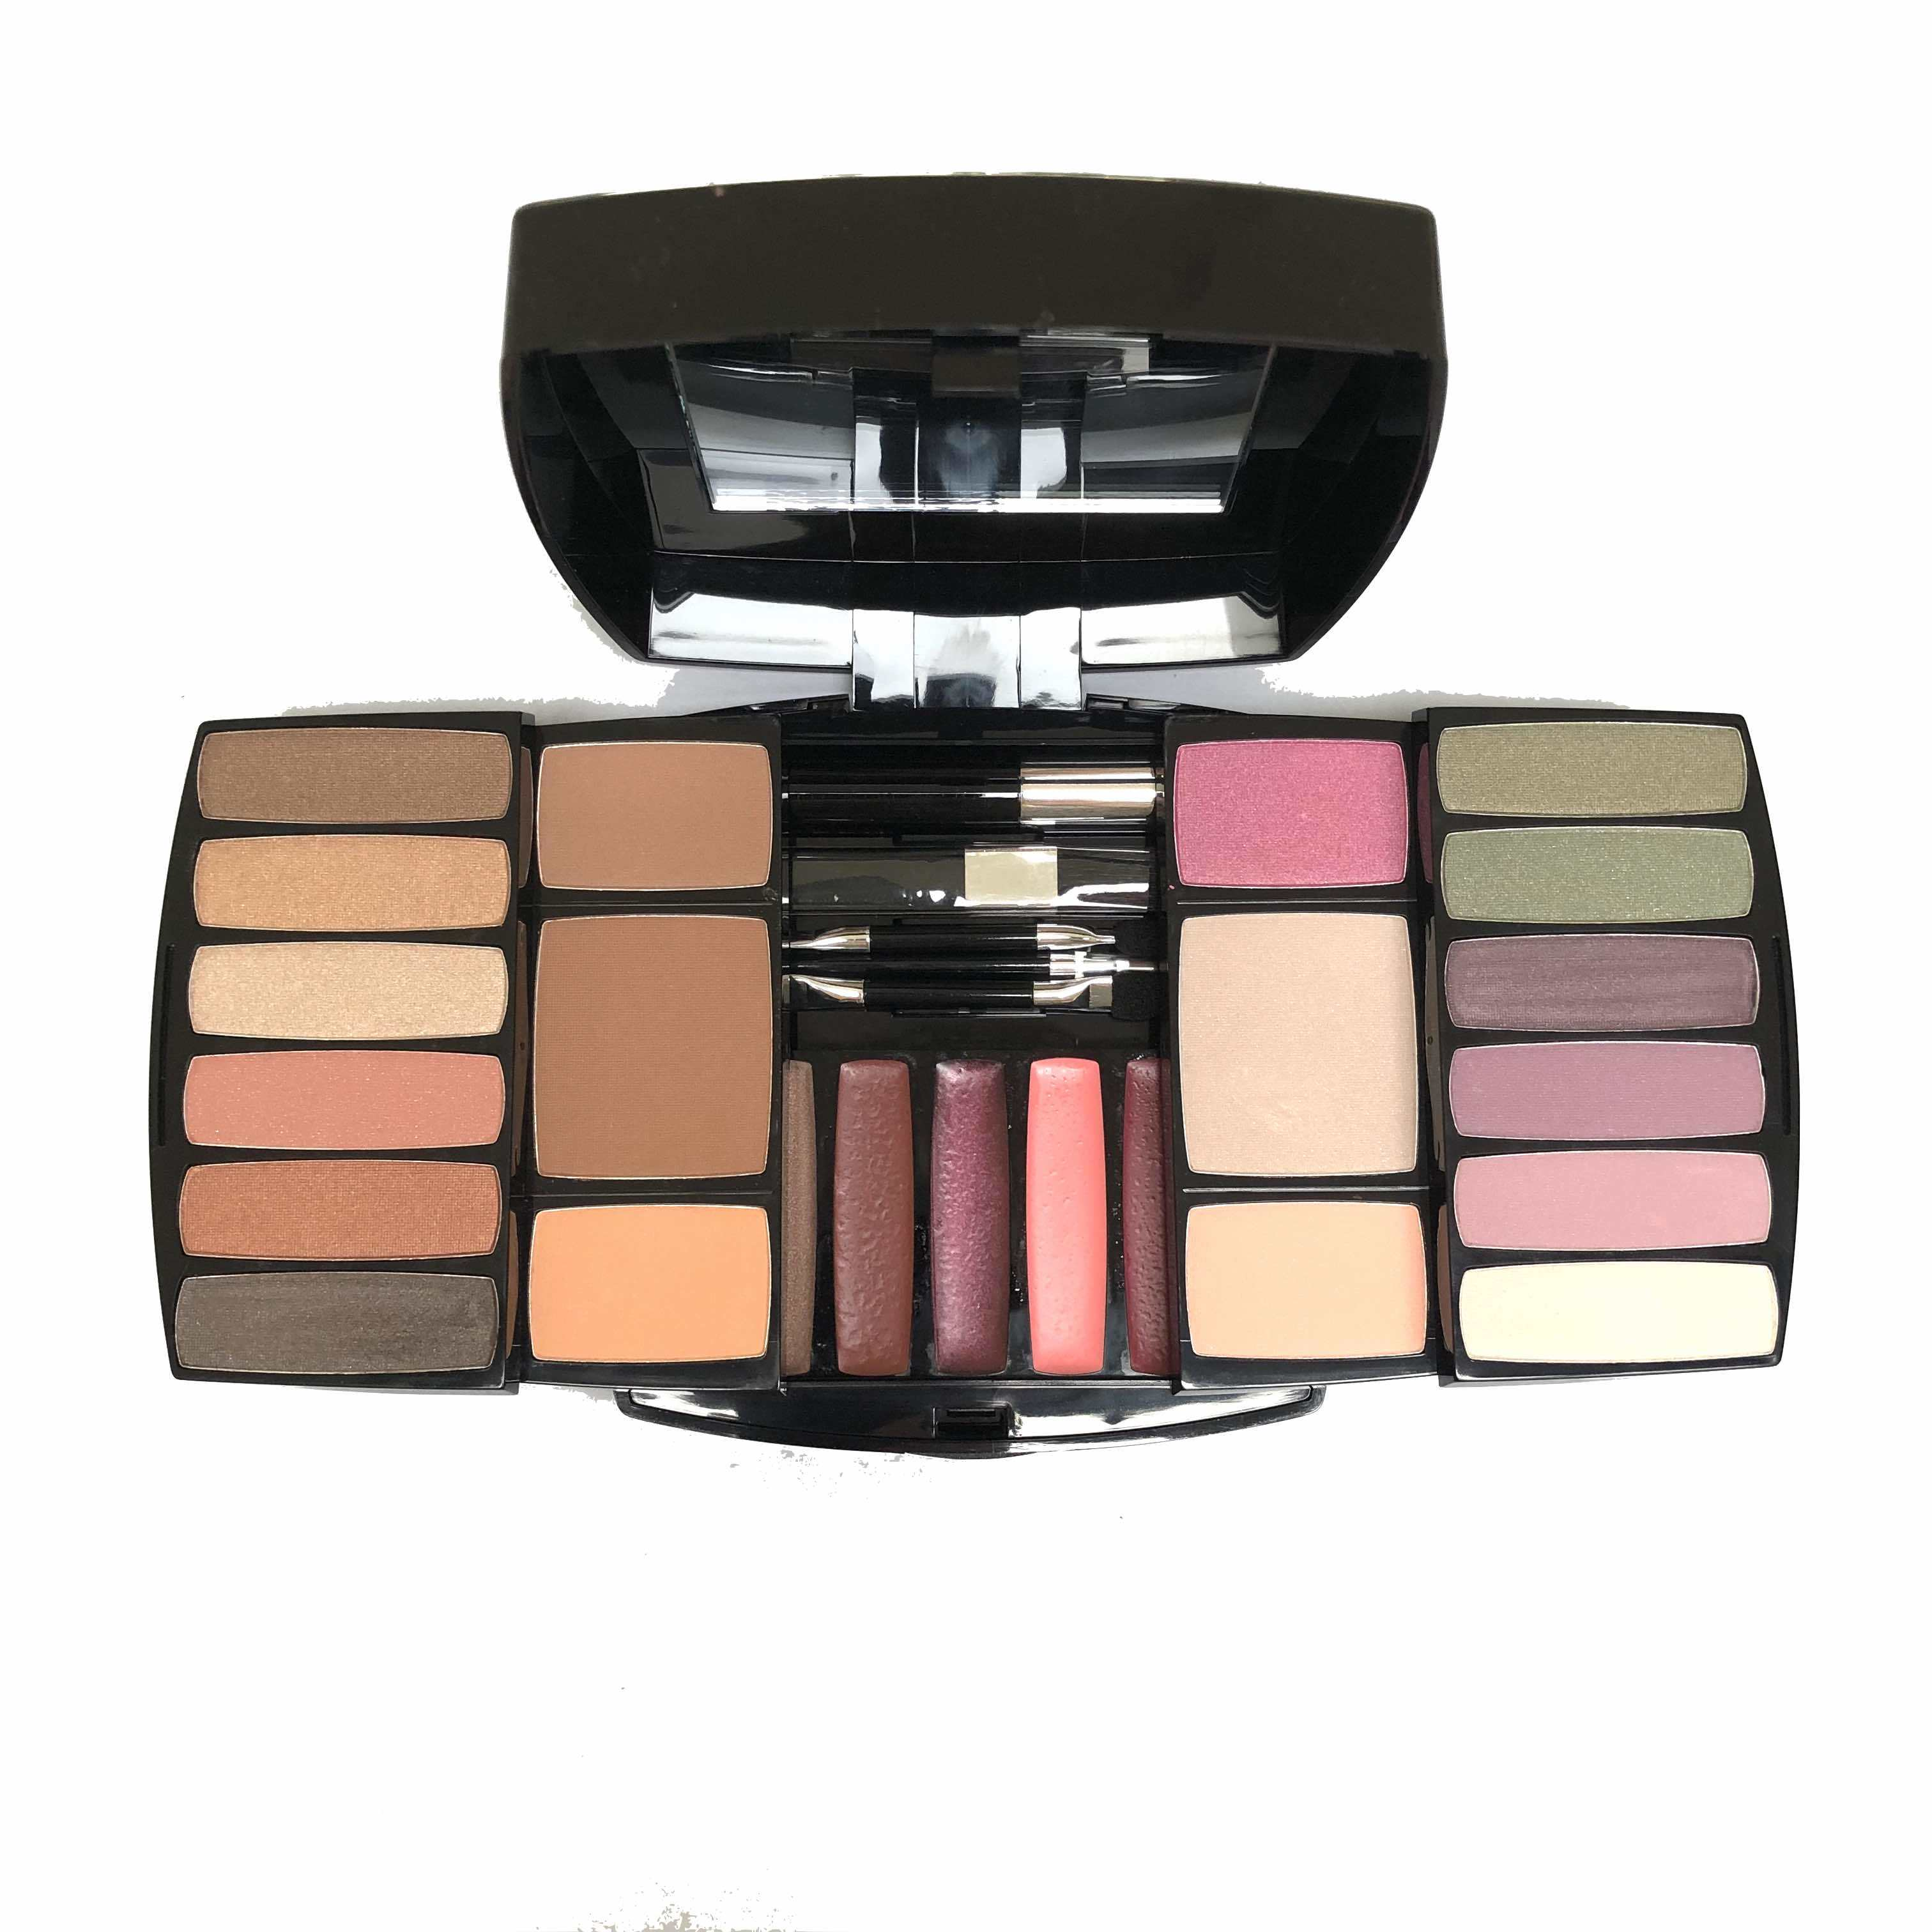 Sephora Ultimate Eye Lip Face Palette Maquillage